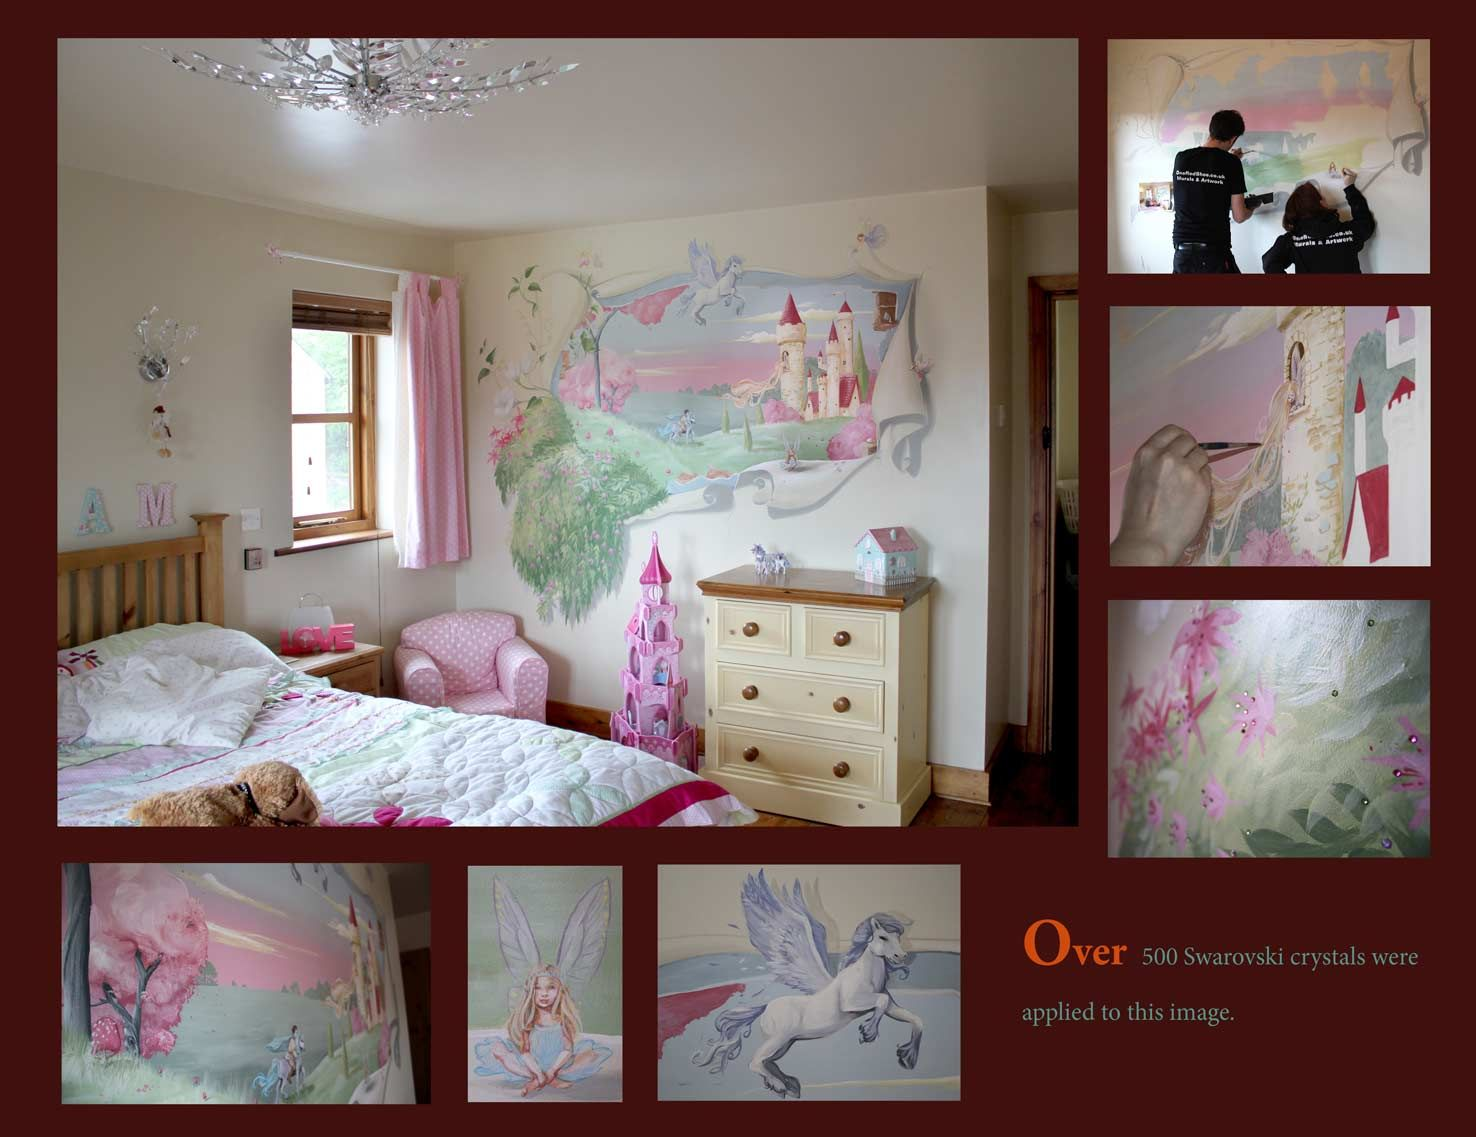 Peel back the walls to reveal a fairytale castle Murals by